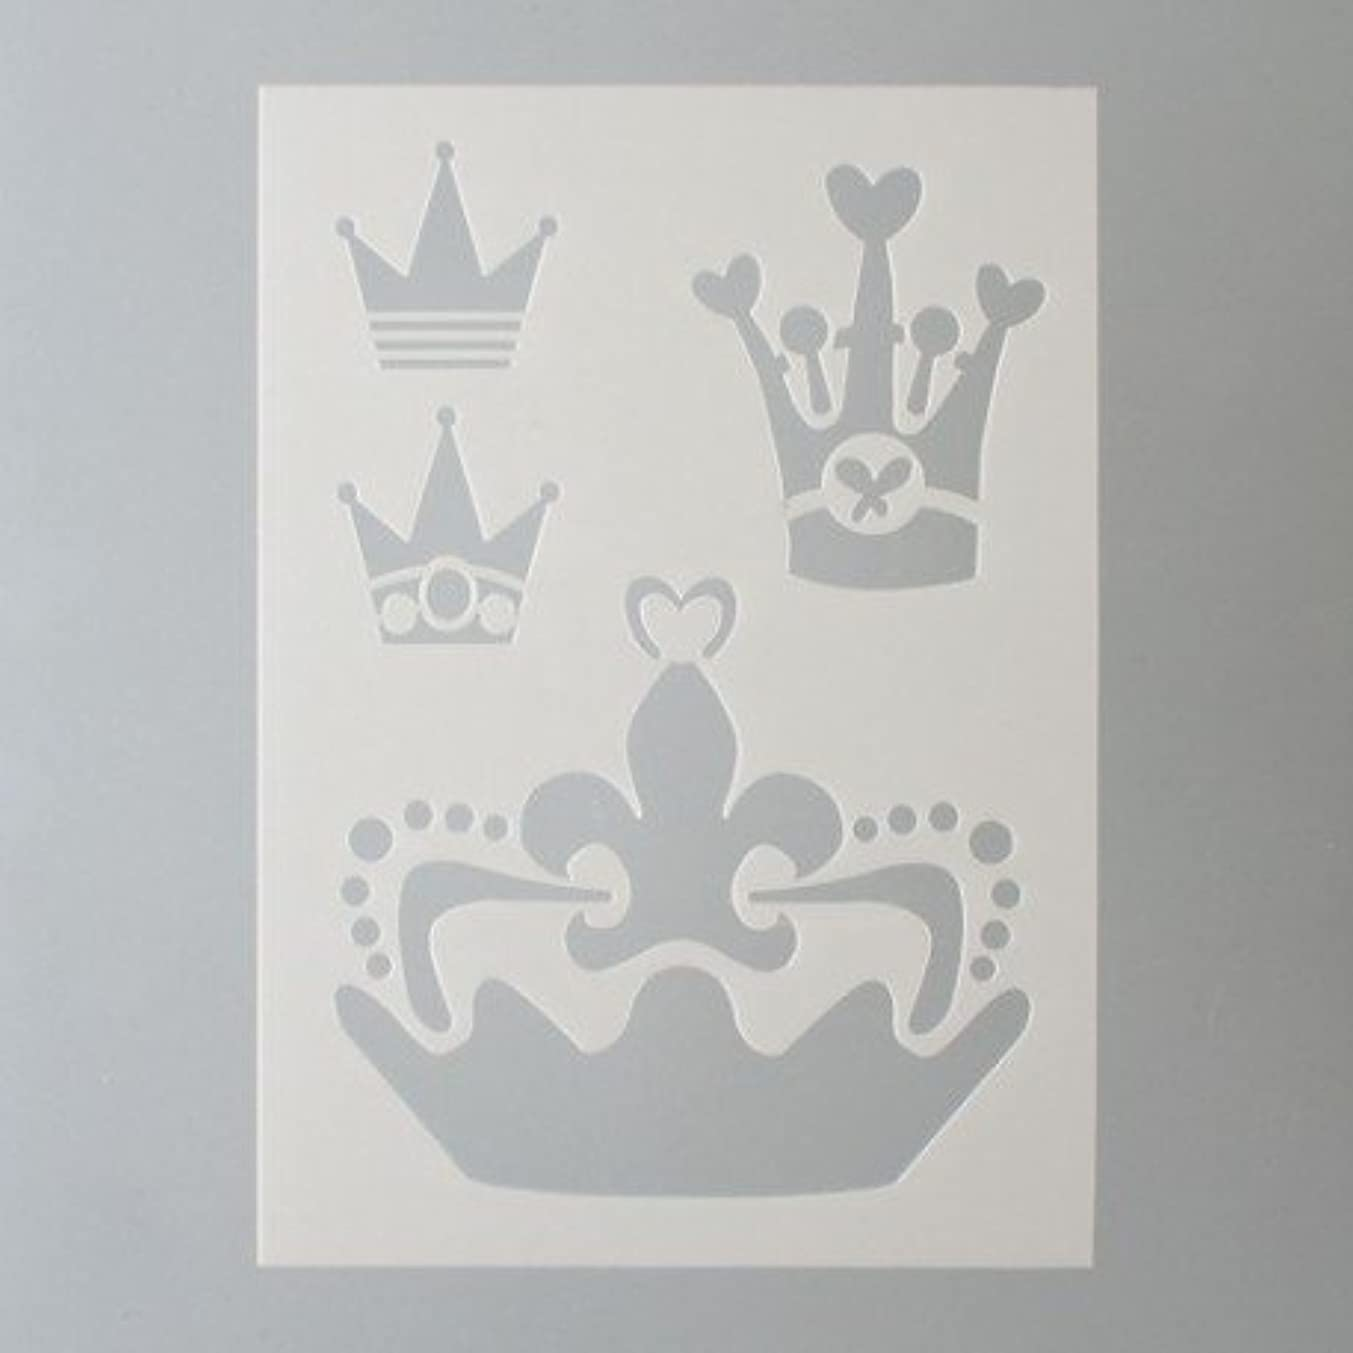 Efco Stencil Crowns/4 Designs Din, Plastic, Transparent, A 5